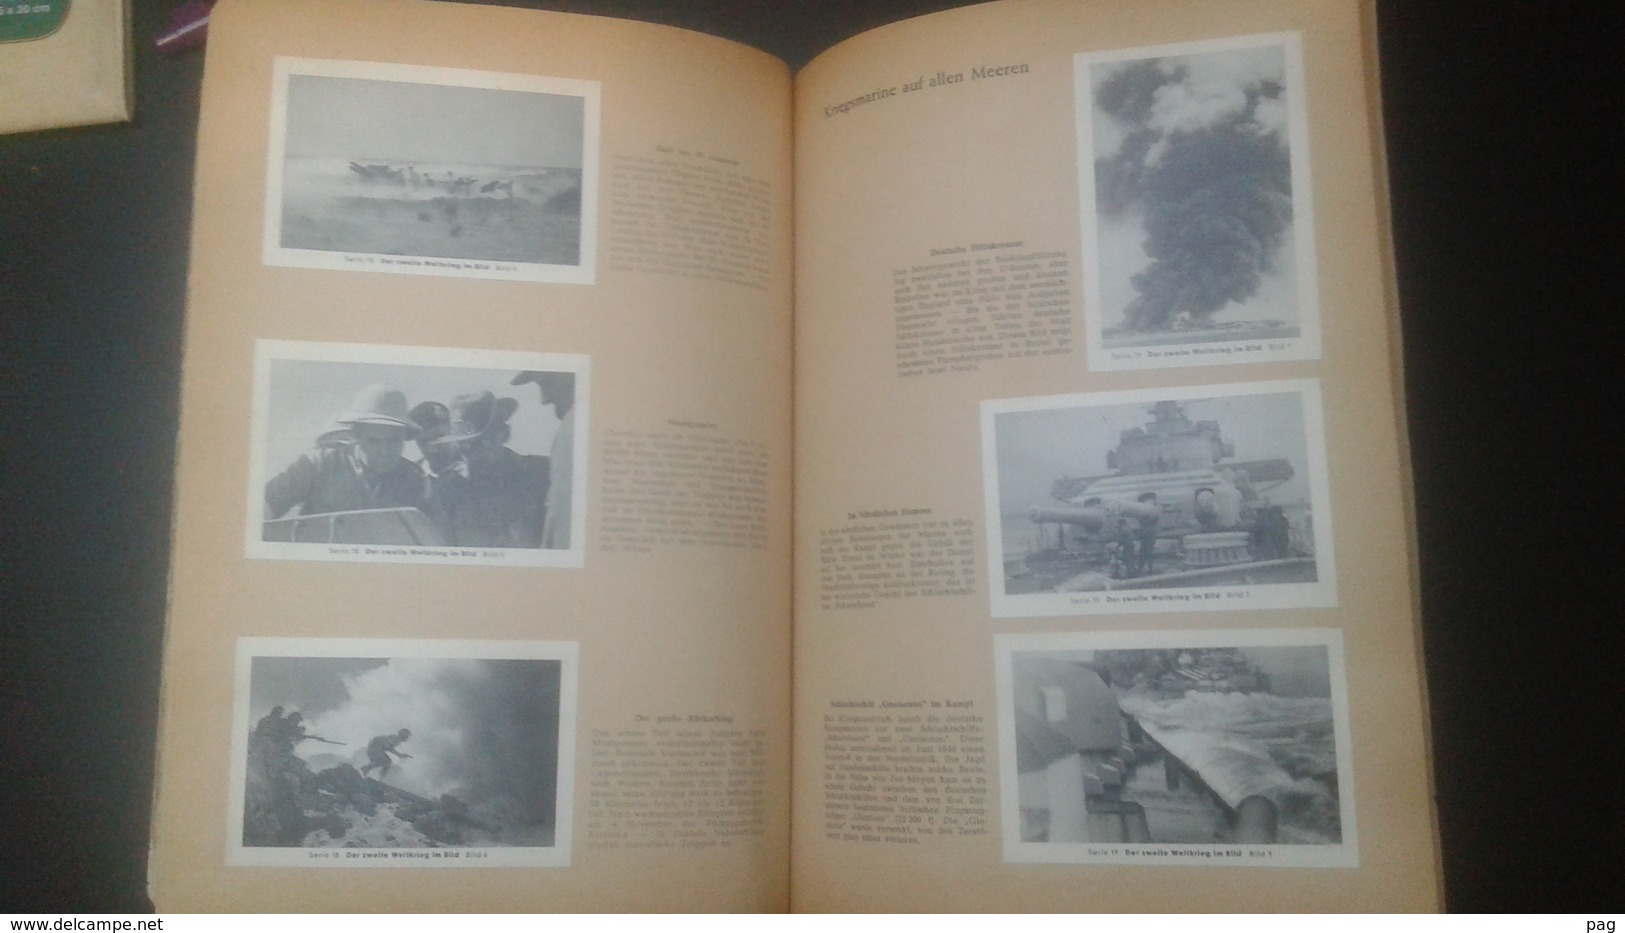 Der Zweite Weltkrieg Im Bild - Band 1 - Complete Book With Self Adhesive Pictures (70 Pages With More Than 200 Pictures) - Deutschland